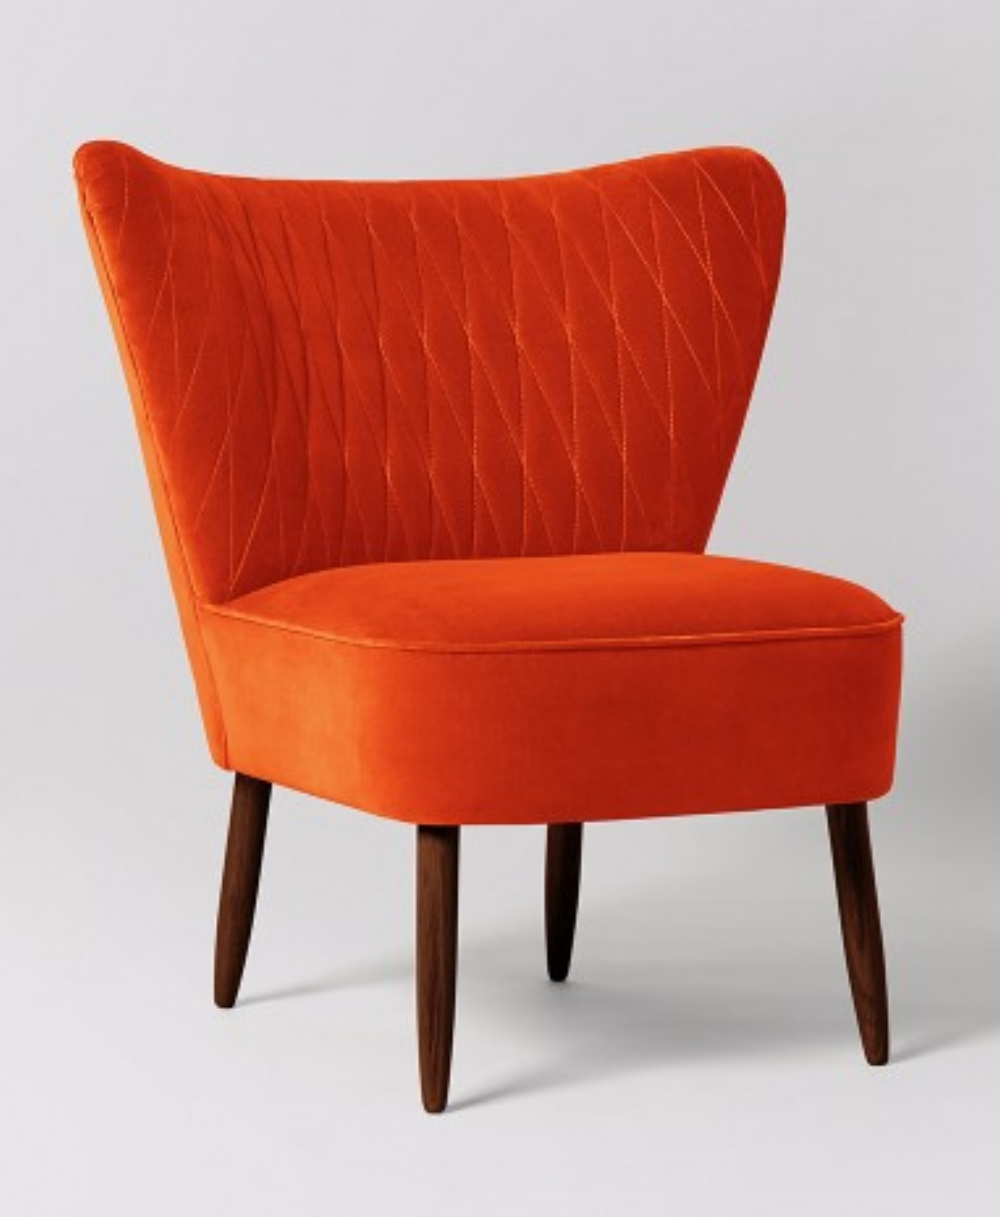 quin_chair_velvet_zinnia_walnut_desktop.jpg